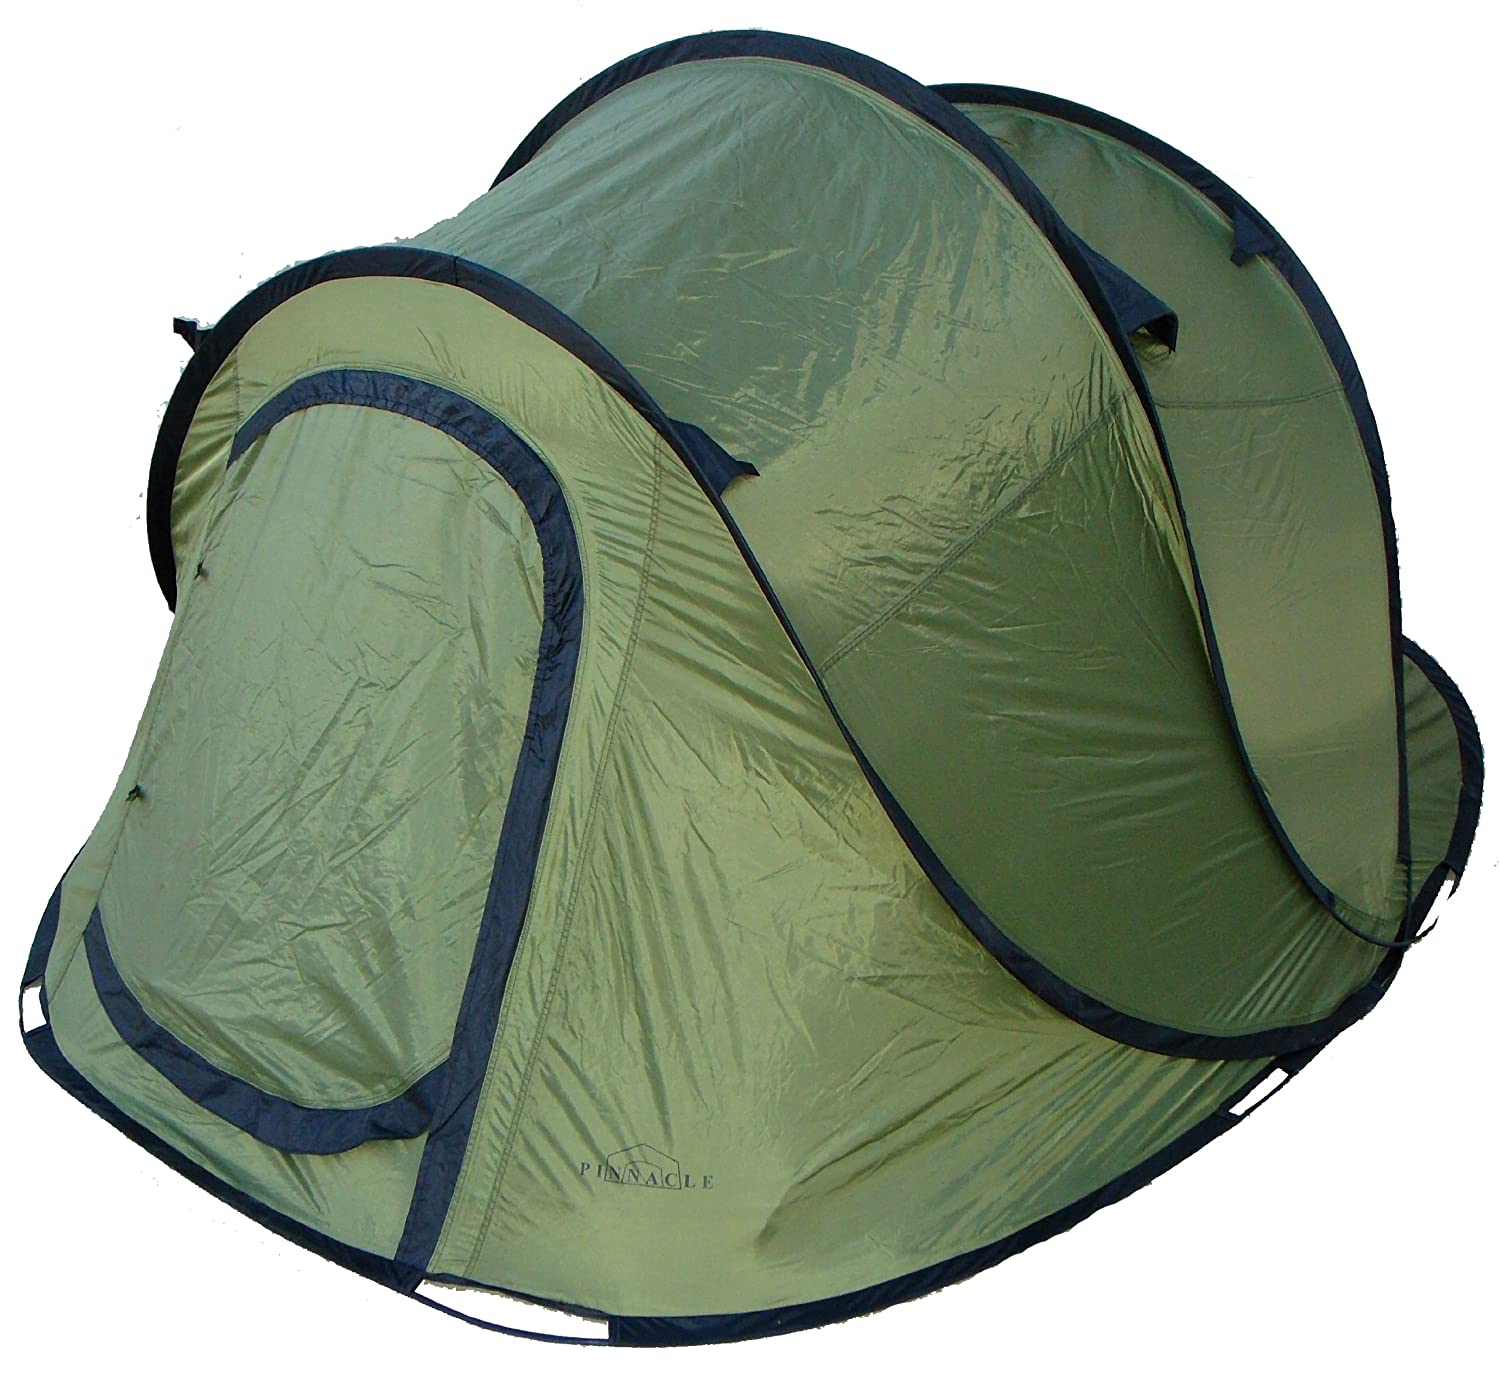 Amazon.com  Pinnacle Tents Pop Up C&ing Tent - 2 Person  Sports u0026 Outdoors  sc 1 st  Amazon.com & Amazon.com : Pinnacle Tents Pop Up Camping Tent - 2 Person ...